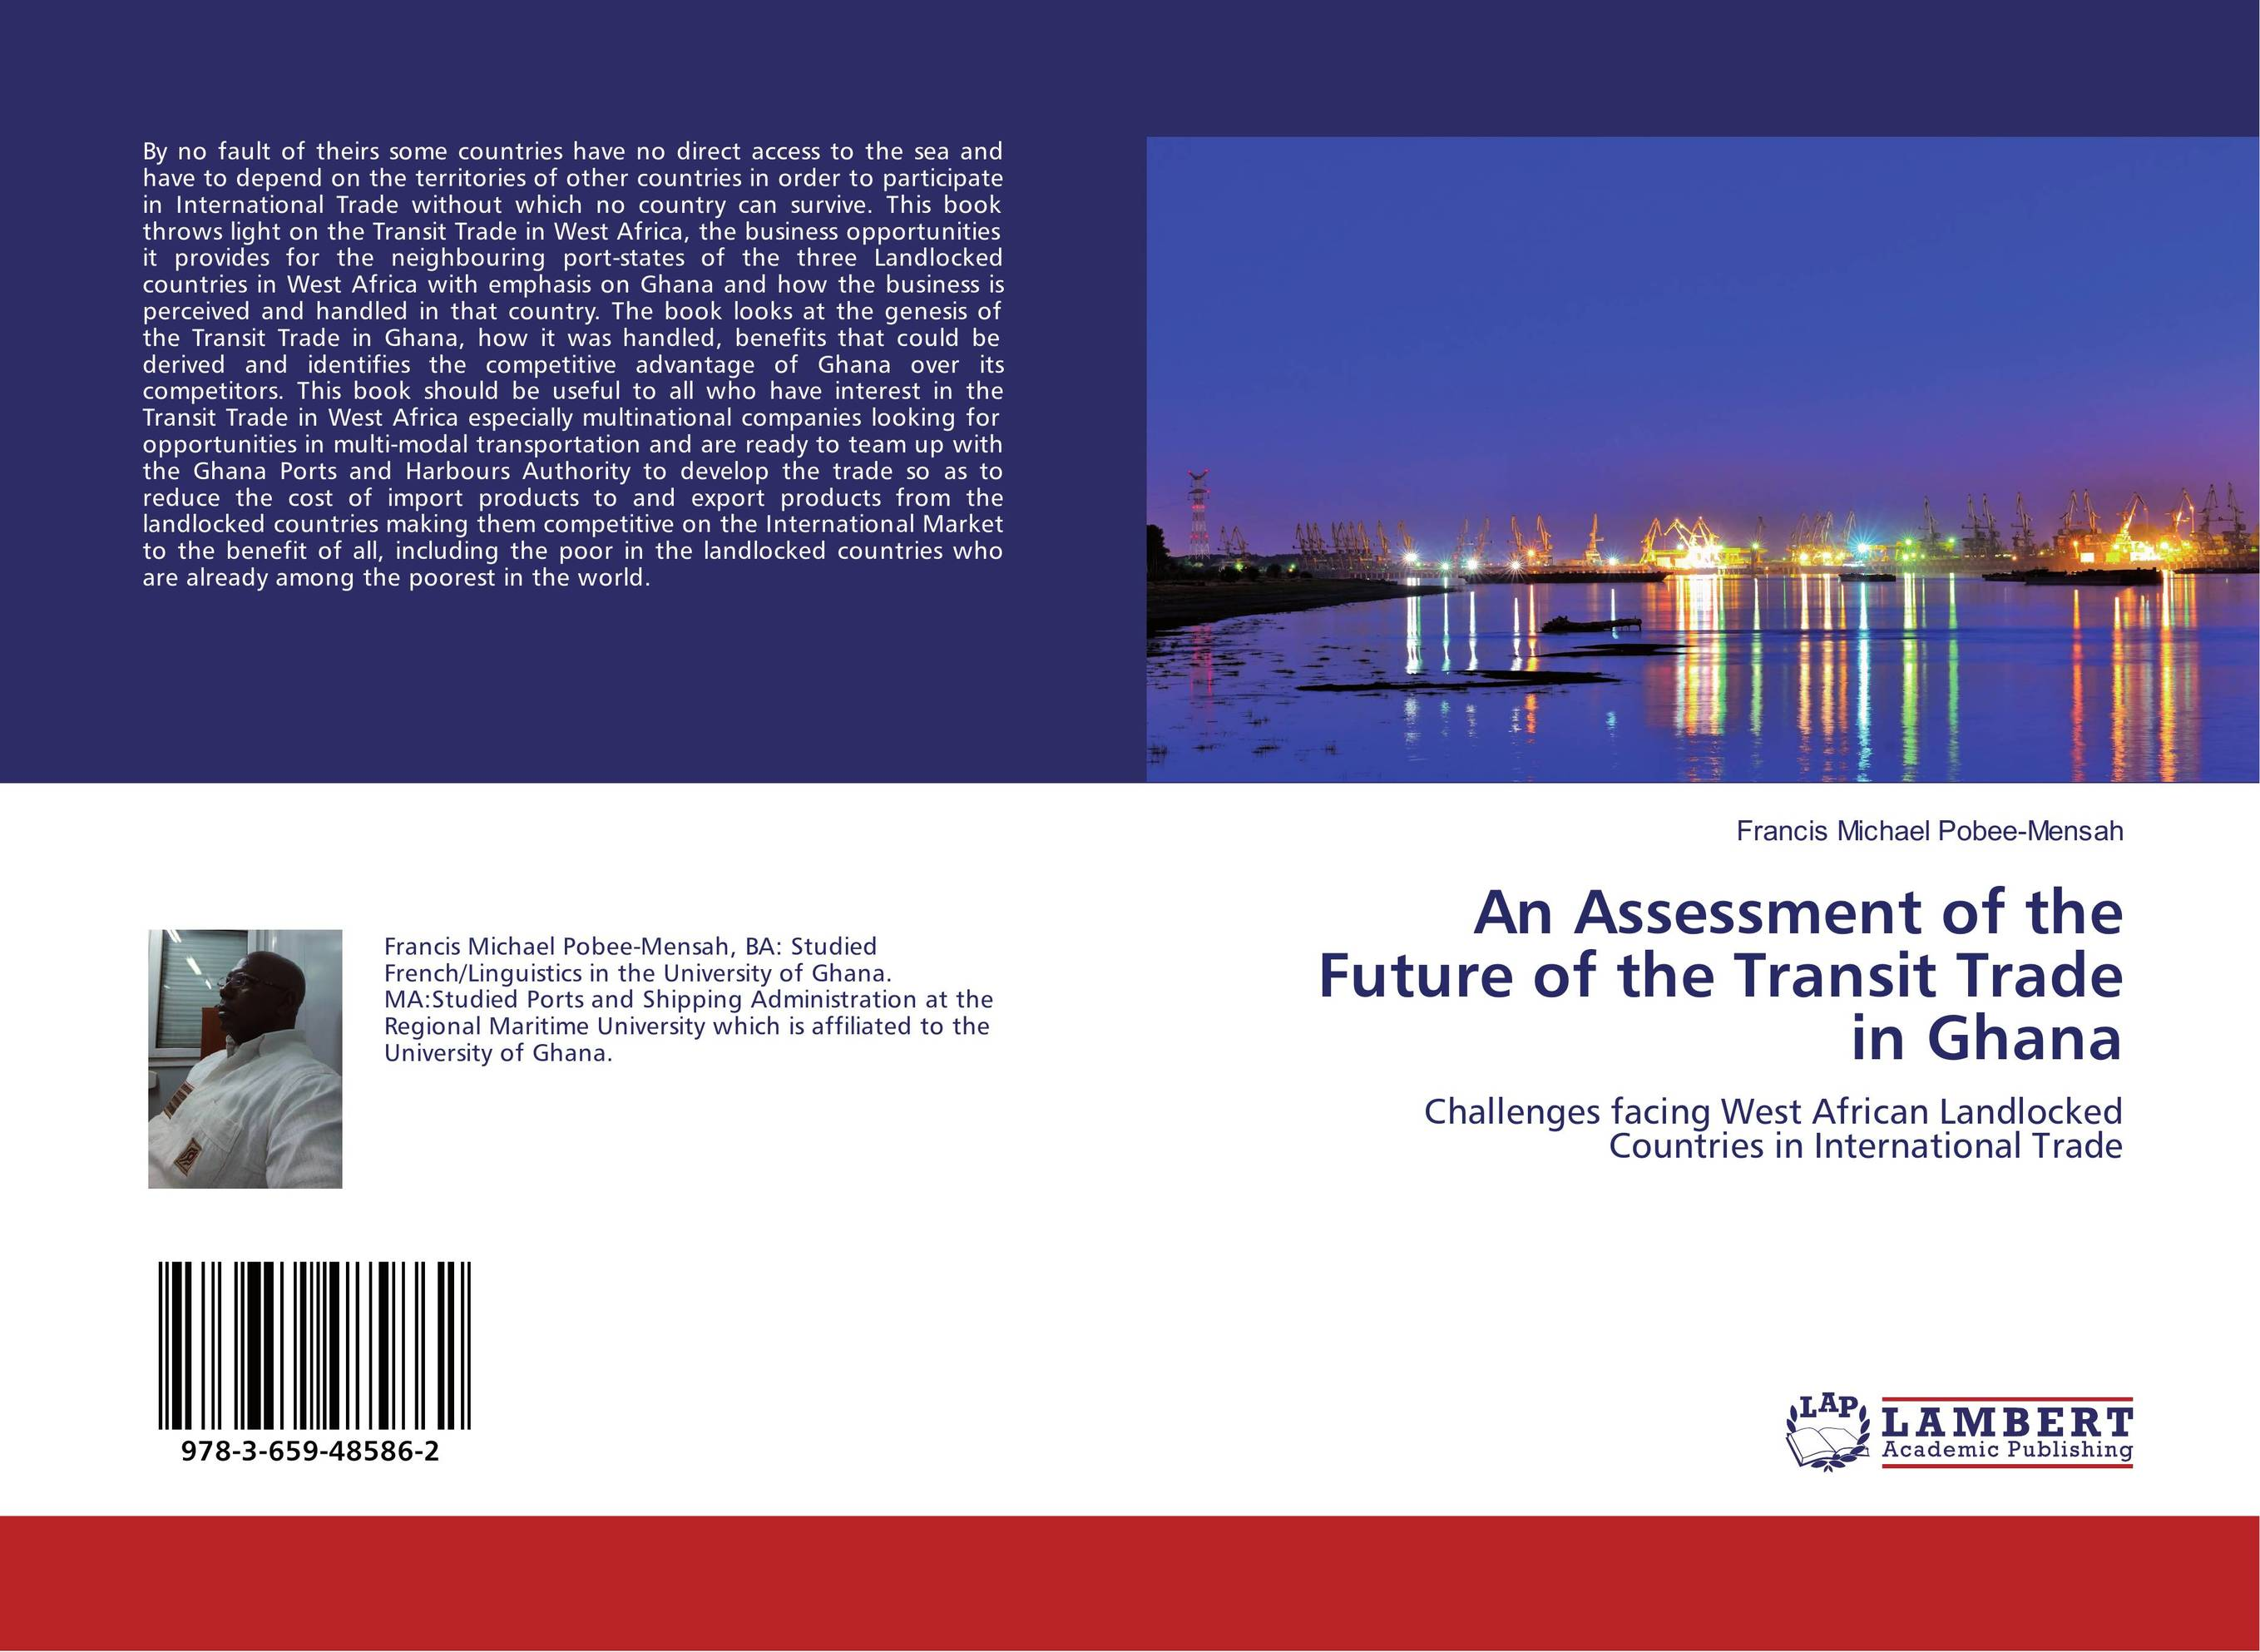 An Assessment of the Future of the Transit Trade in Ghana